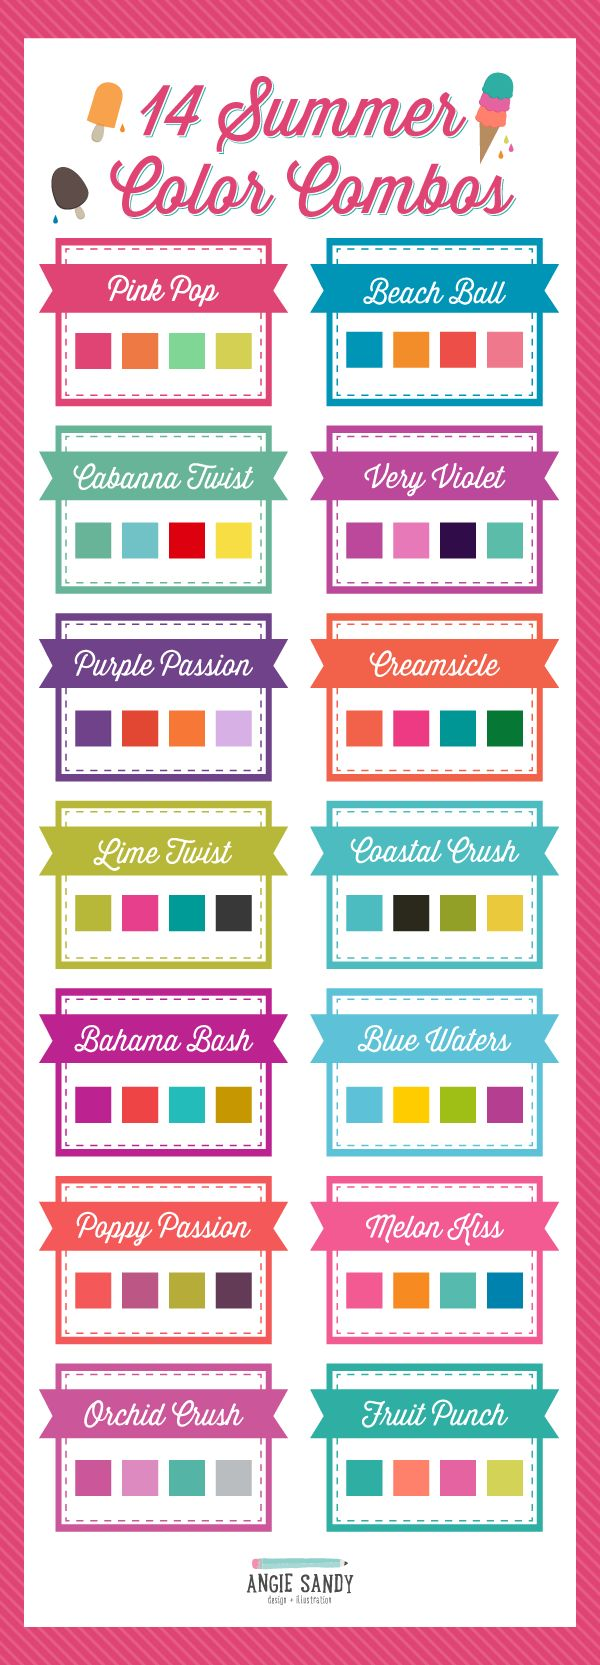 14 Bright Summer Color Palettes | Angie Sandy Design + Illustration #colorpalette #colorcrush